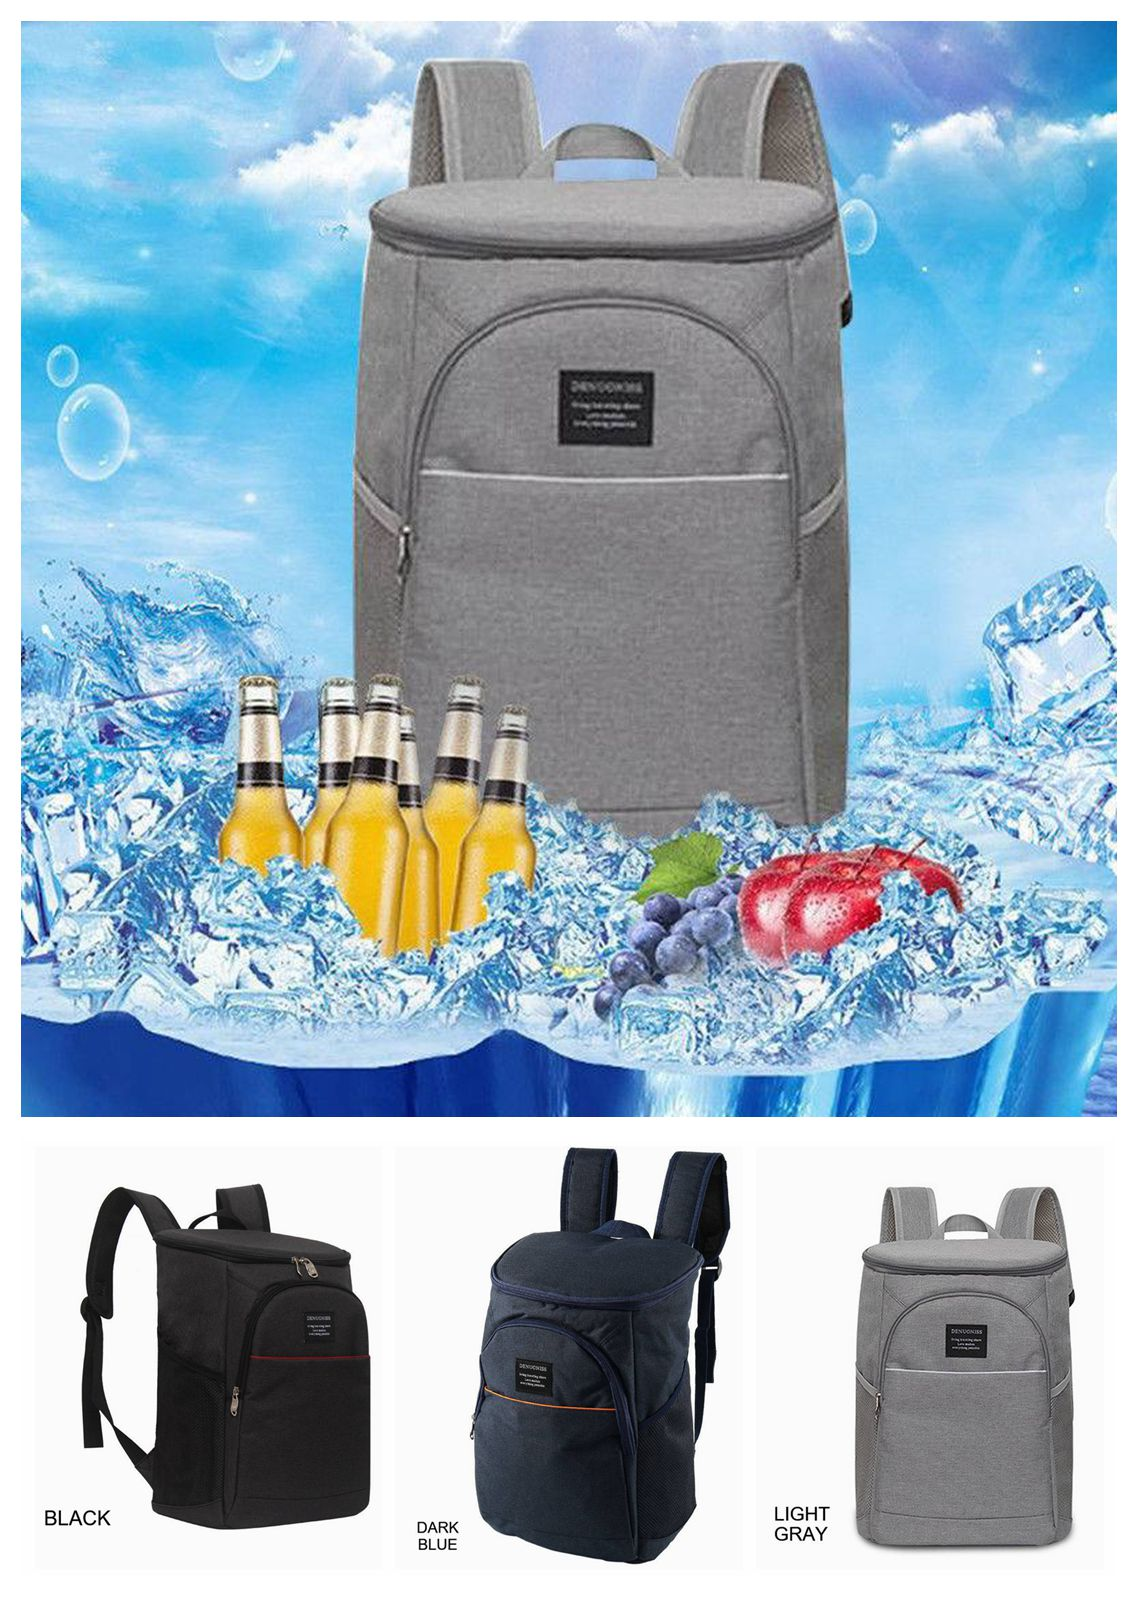 20L Insulated Cooling Backpack Cooler Summer Camping Beach Rucksack Fishing Bag